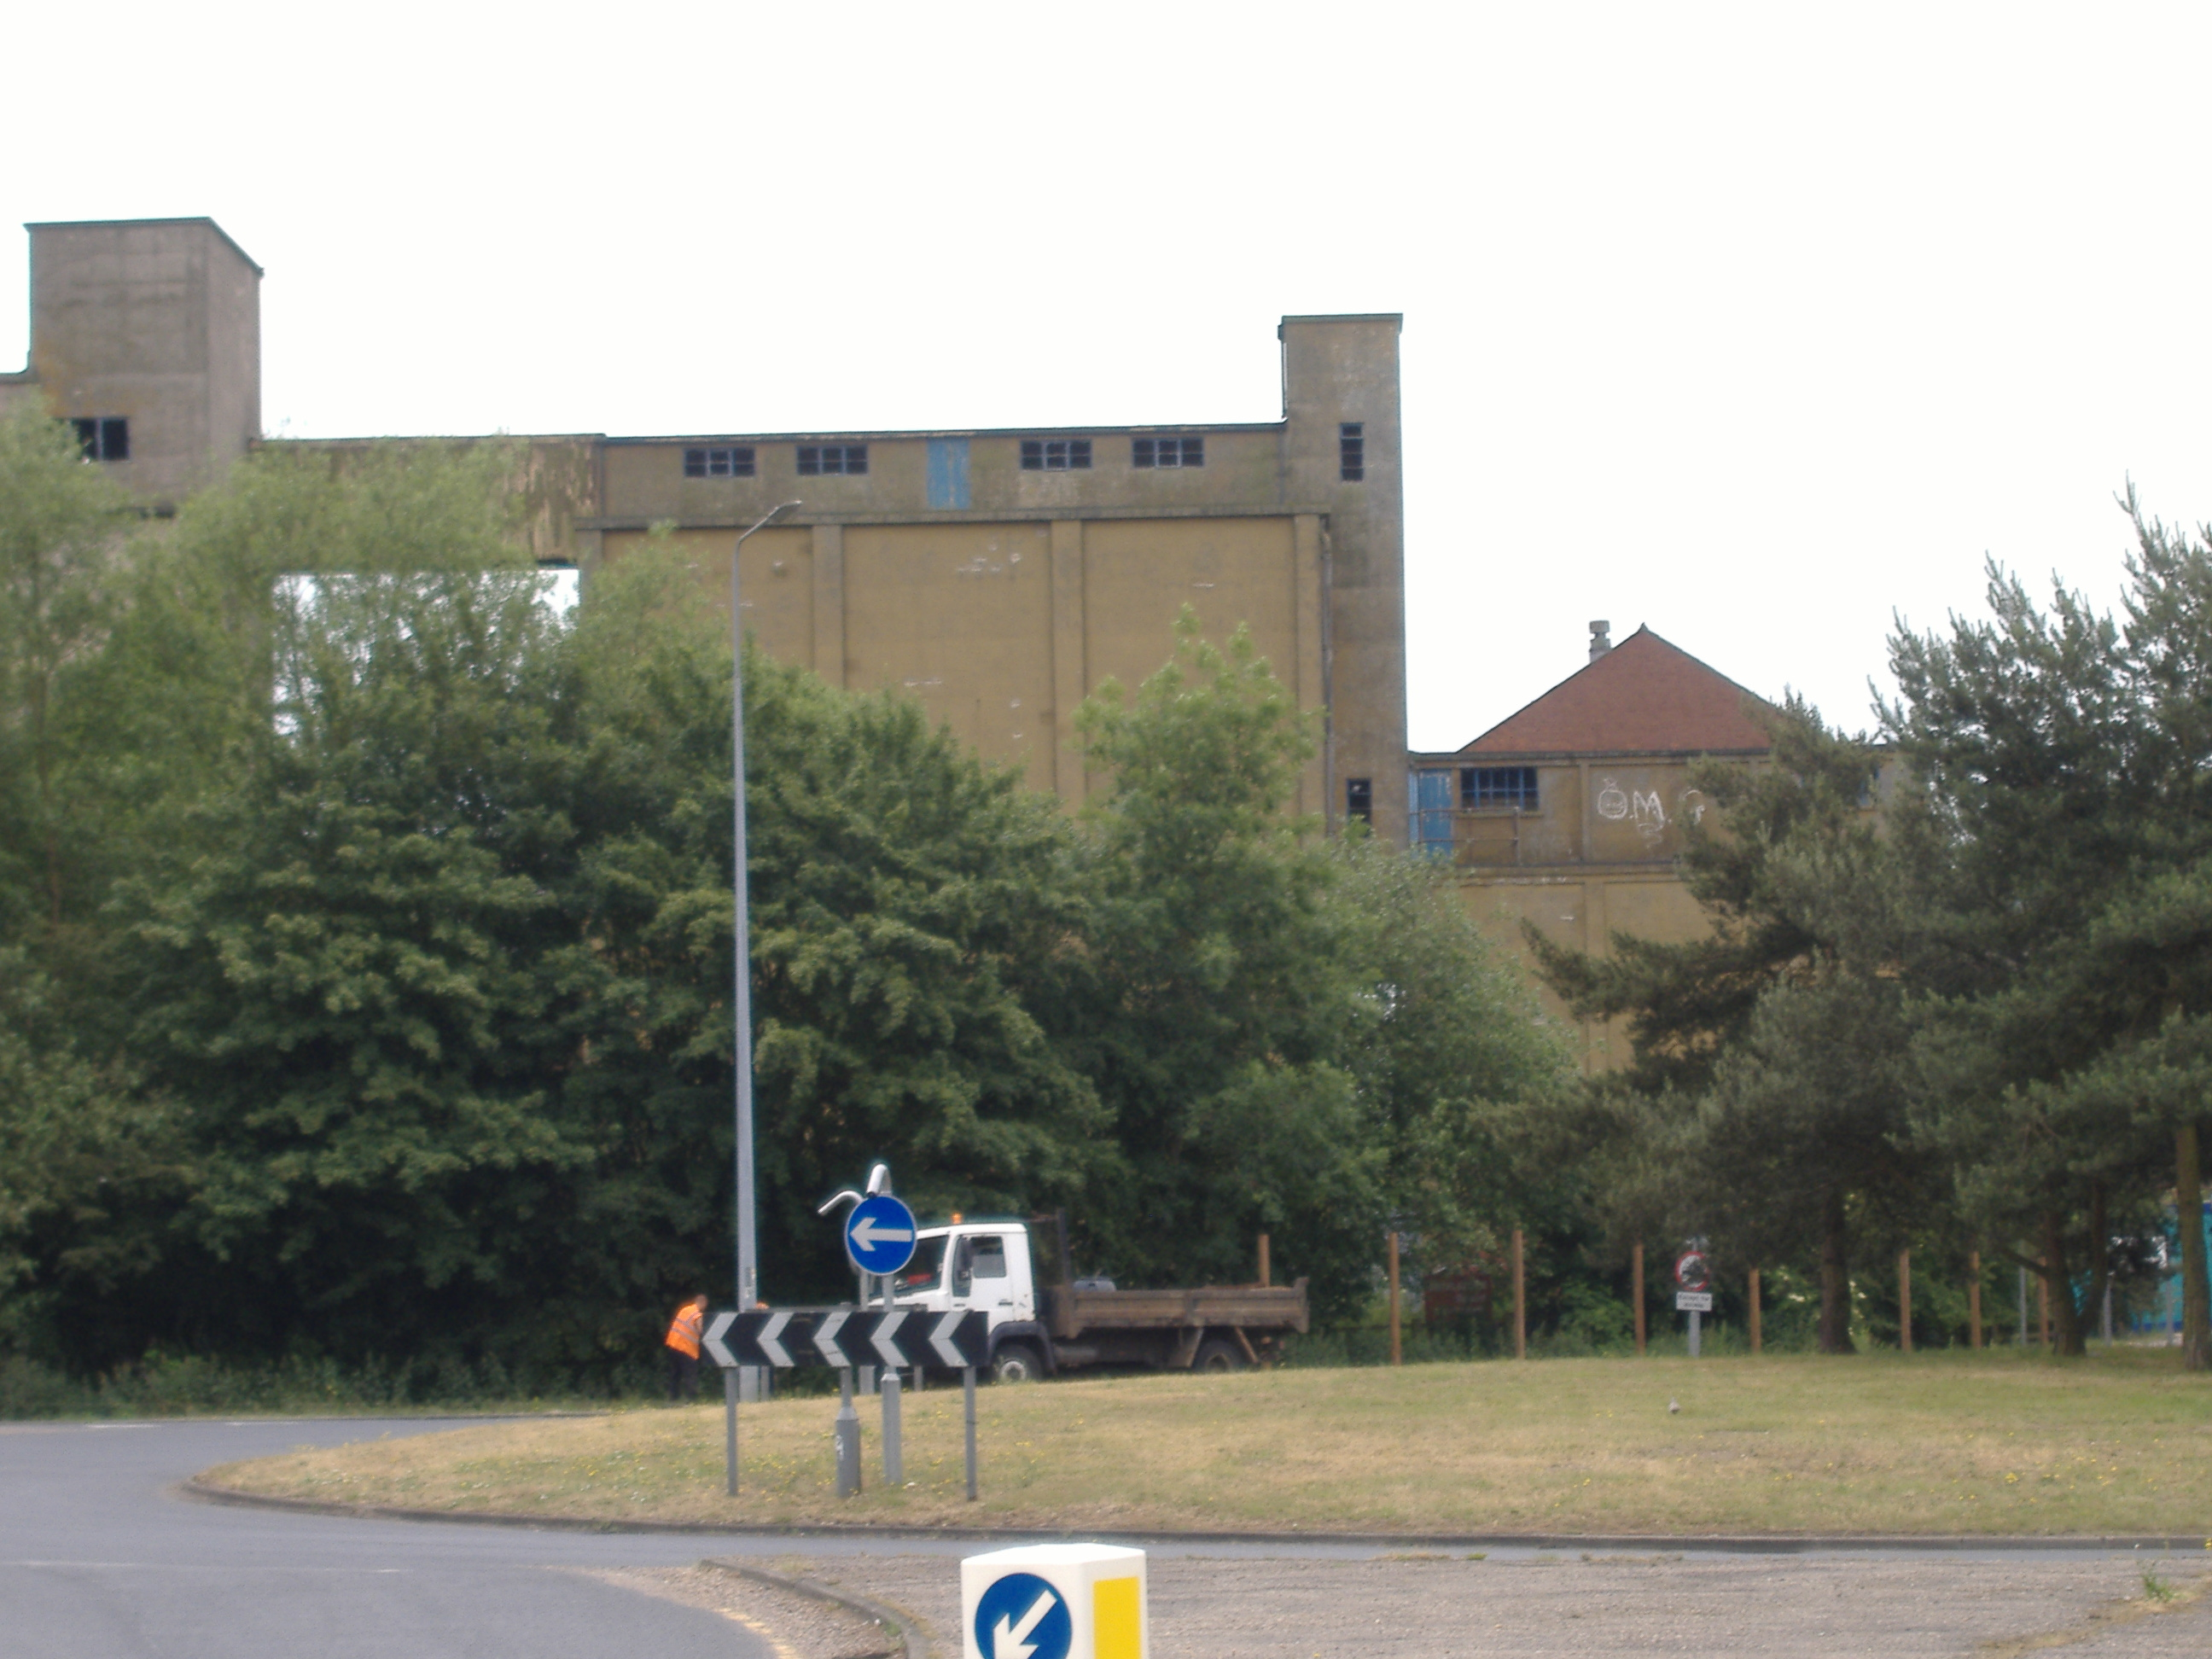 Photograph of the Old Maltings from Chicken Roundabout